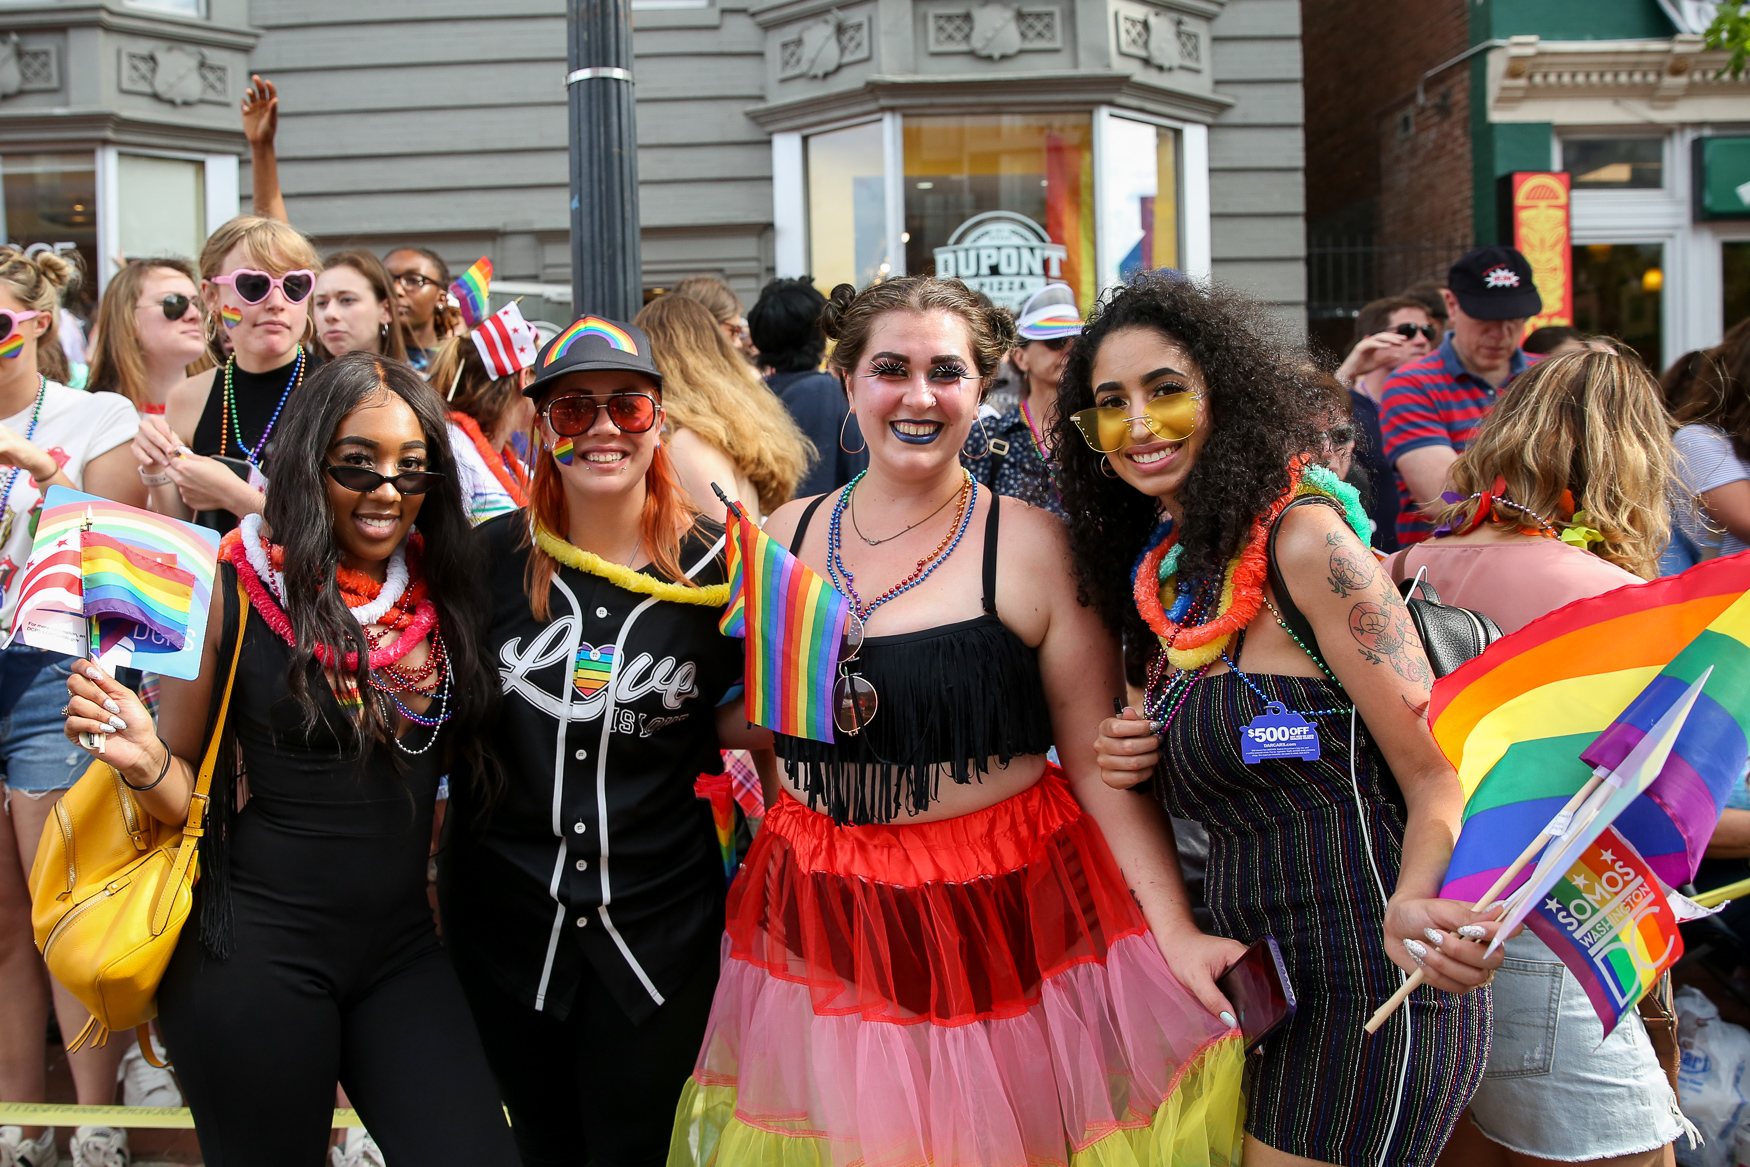 There were plenty of eye-catching makeup looks around Pride this year, which we'd love to see around D.C. more often!{ } (Amanda Andrade-Rhoades/DC Refined)